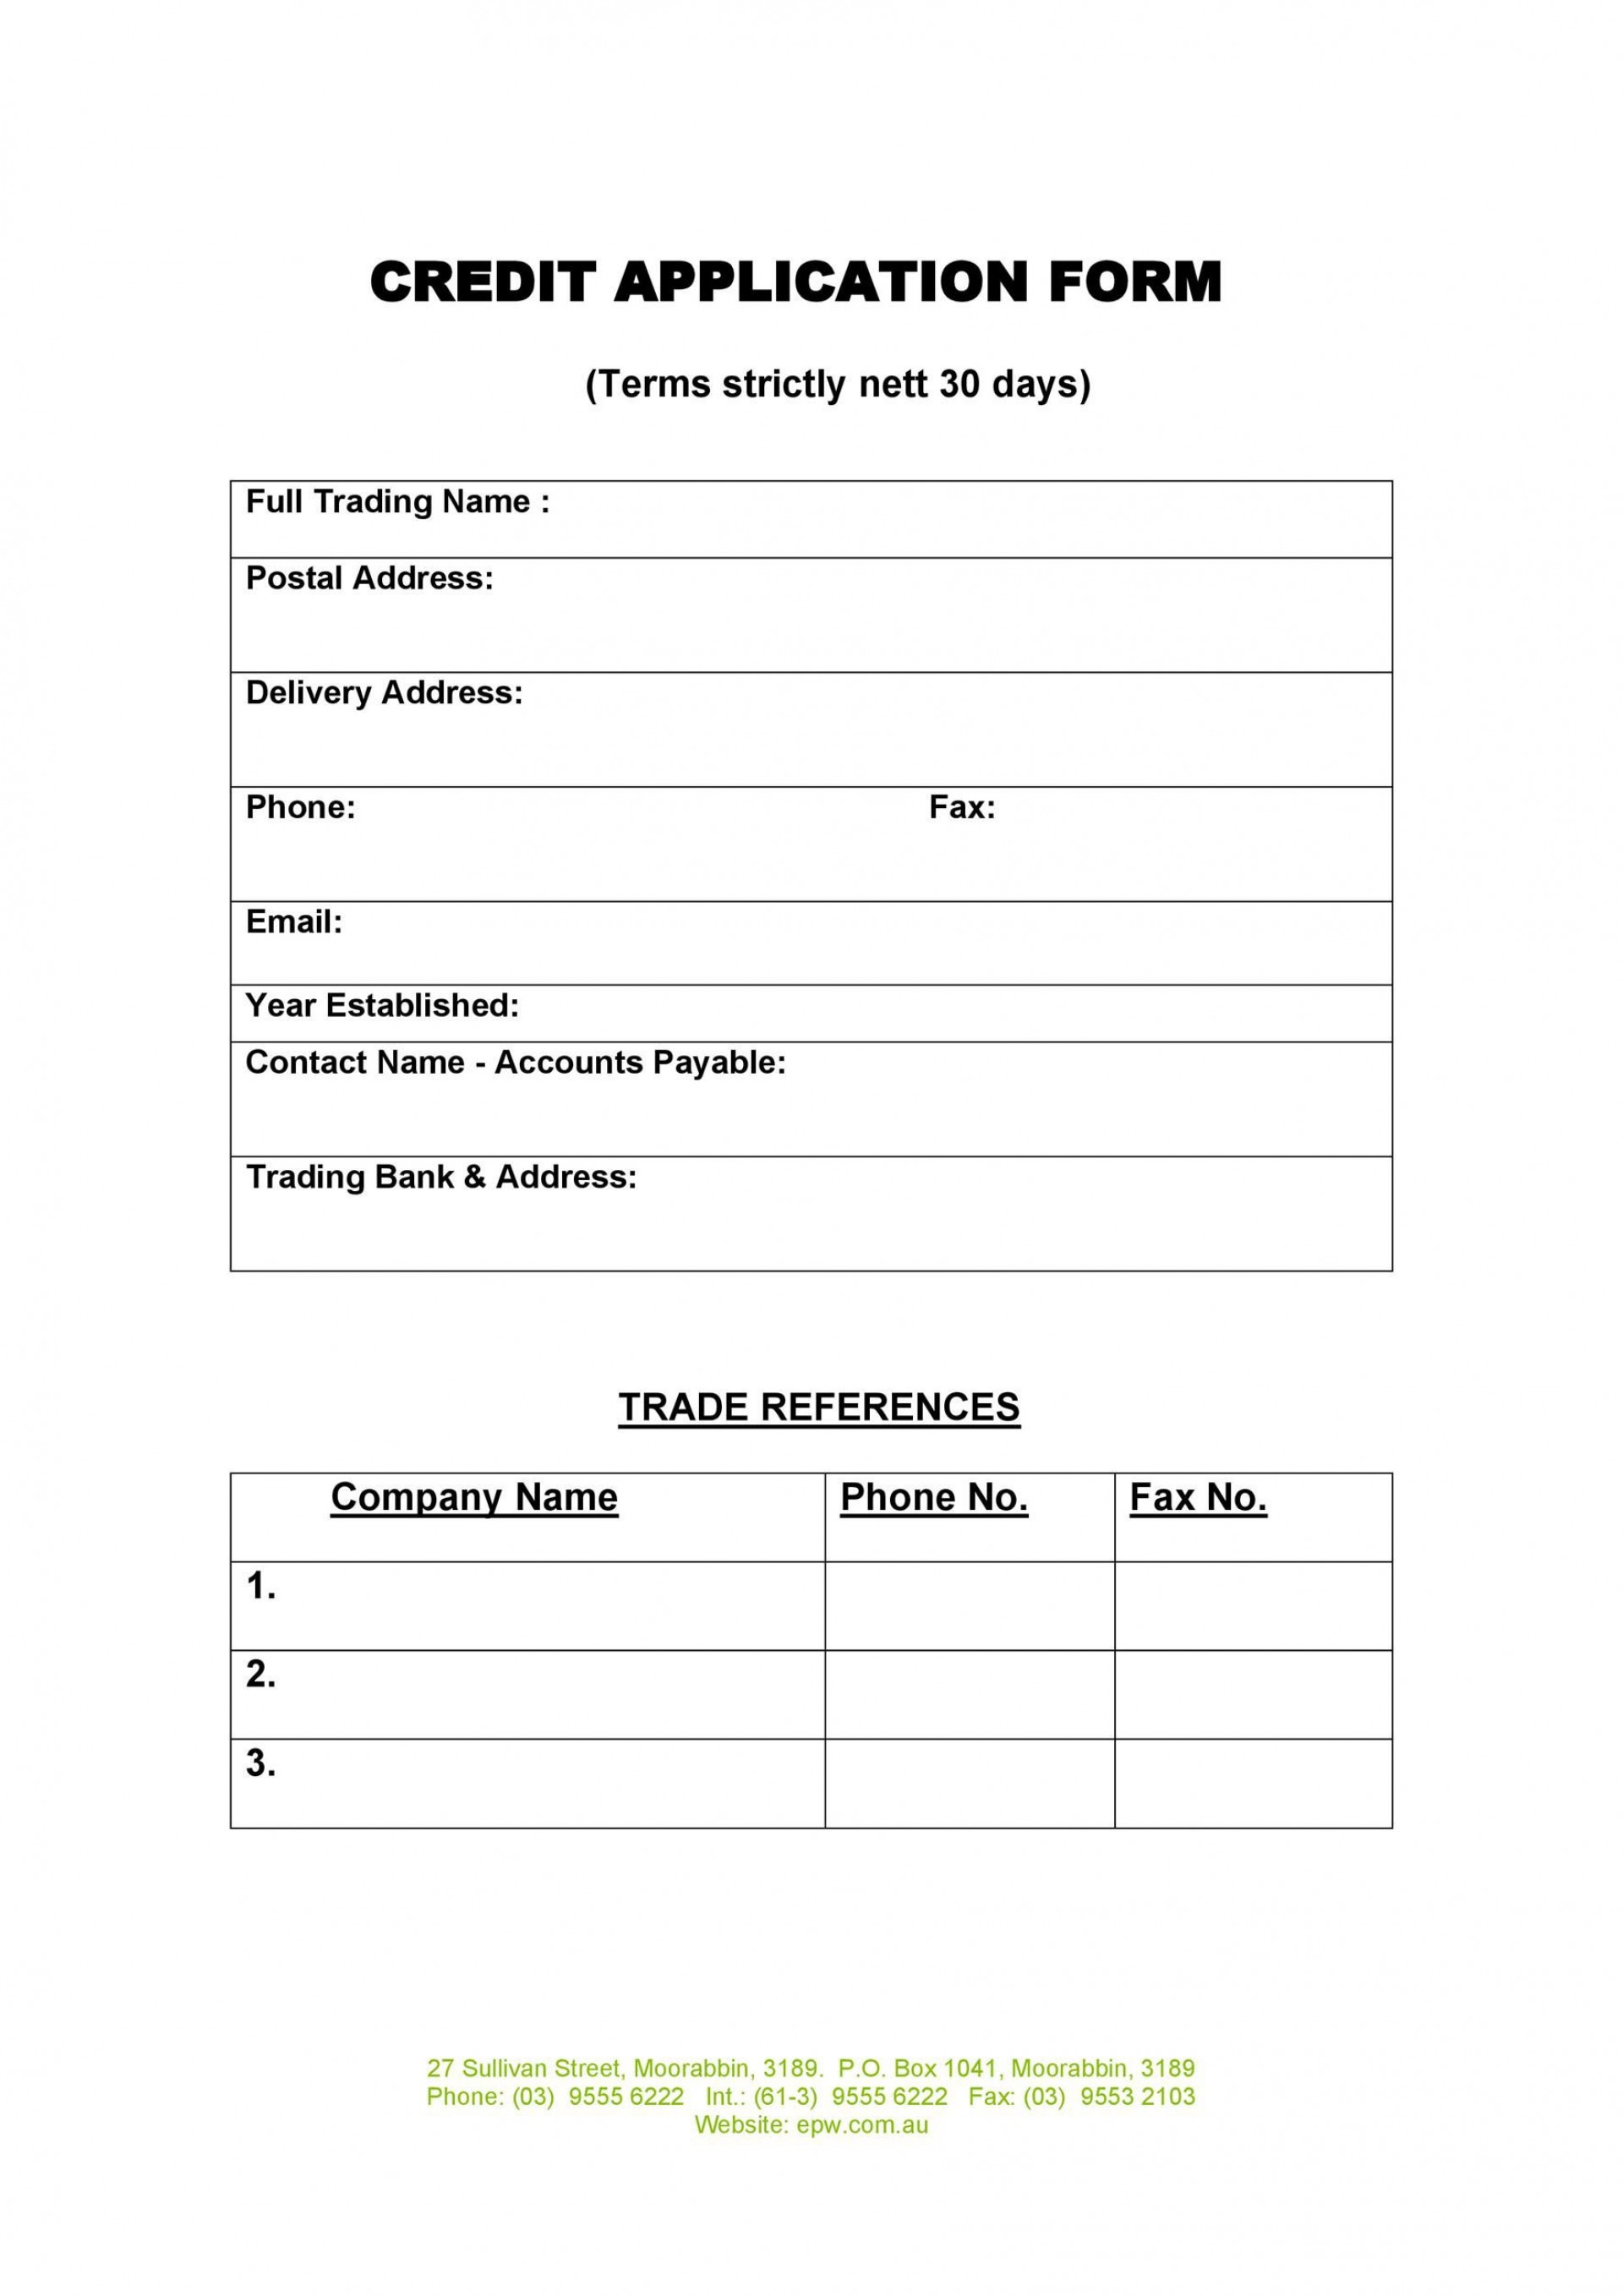 006 Frightening Busines Credit Application Form Template Free Highest Quality  South Africa Australia1920